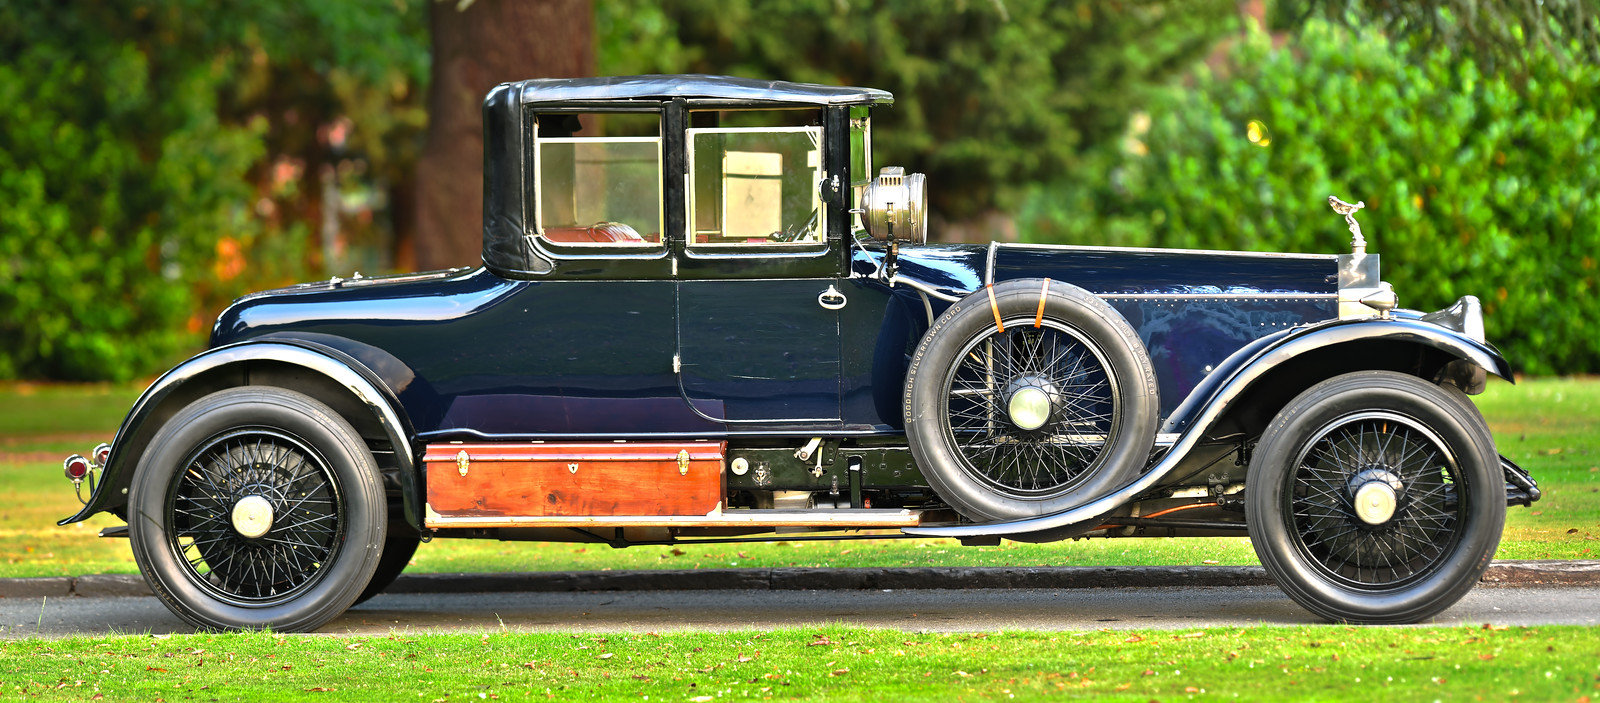 1923 Rolls Royce Silver Ghost Barker 3/4 Cabriolet For Sale (picture 2 of 6)